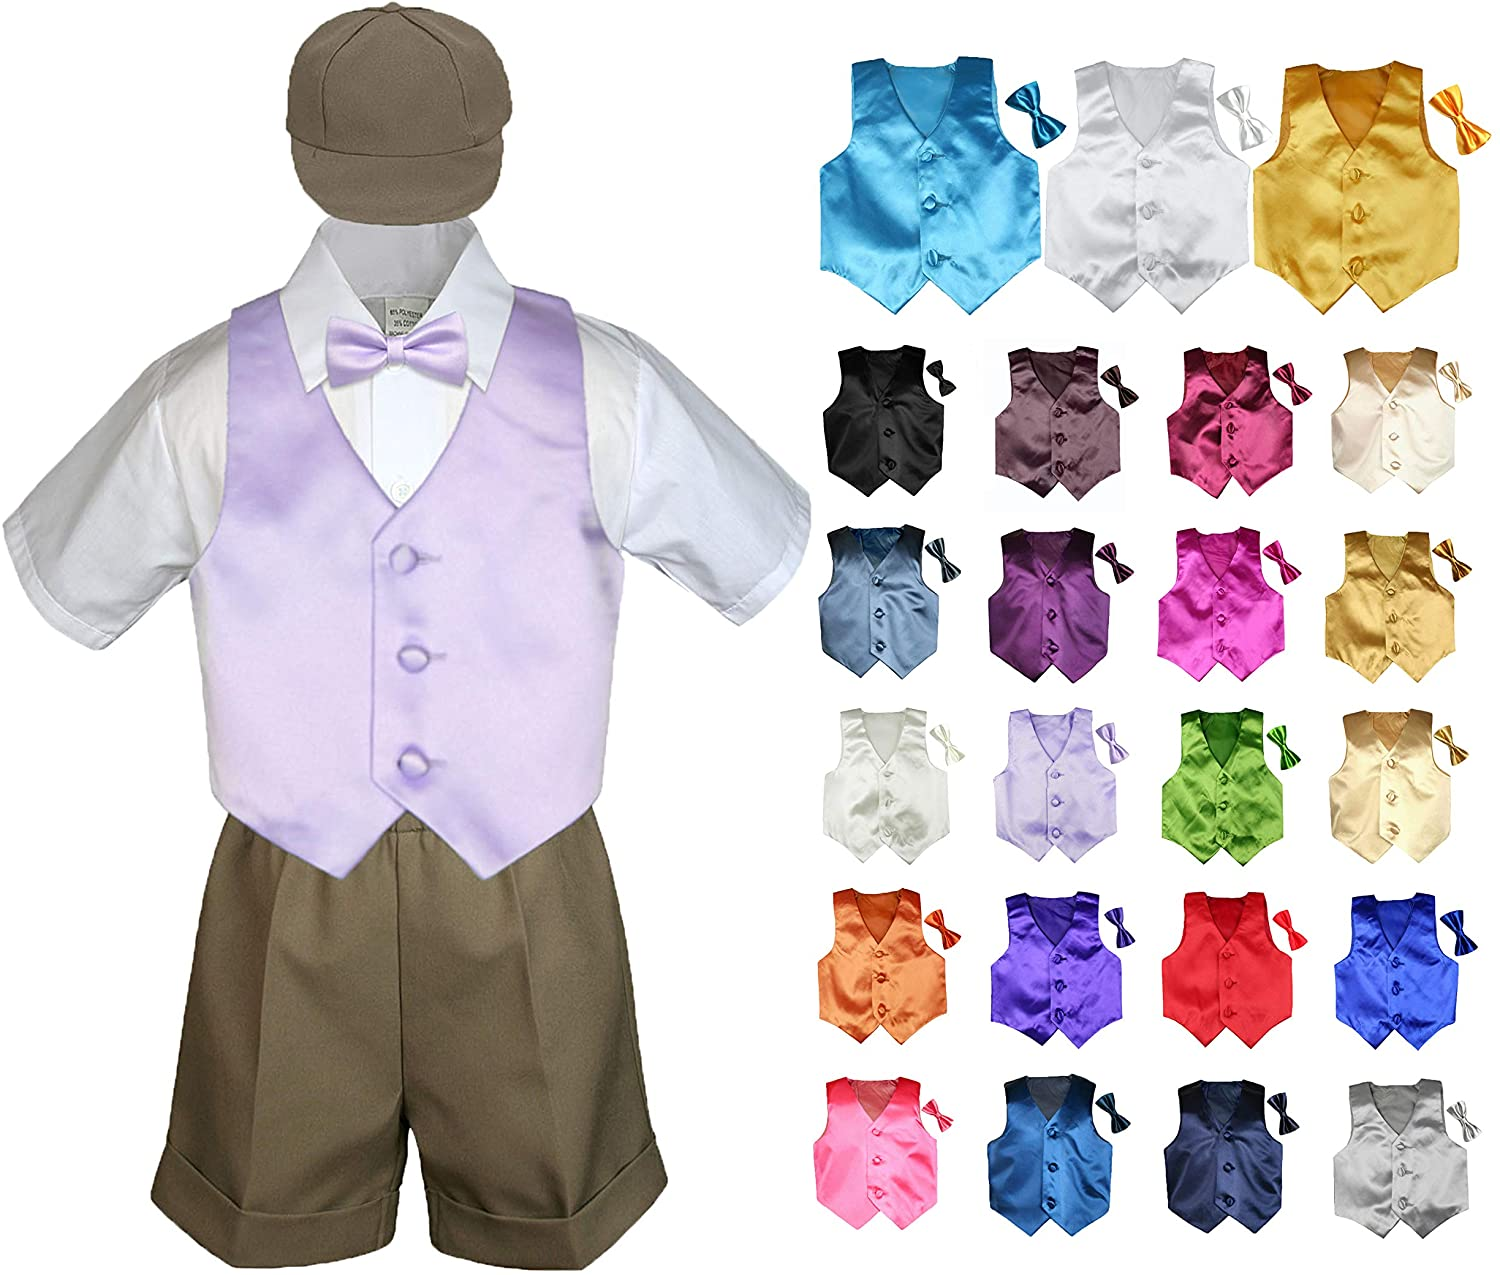 MILLTEX 5 Pieces Formal Wedding Color Satin Vest & Bow tie Shirt W/Hat Taupe Shorts Set Baby Boy Toddler Sm-4T (2T, Brown)